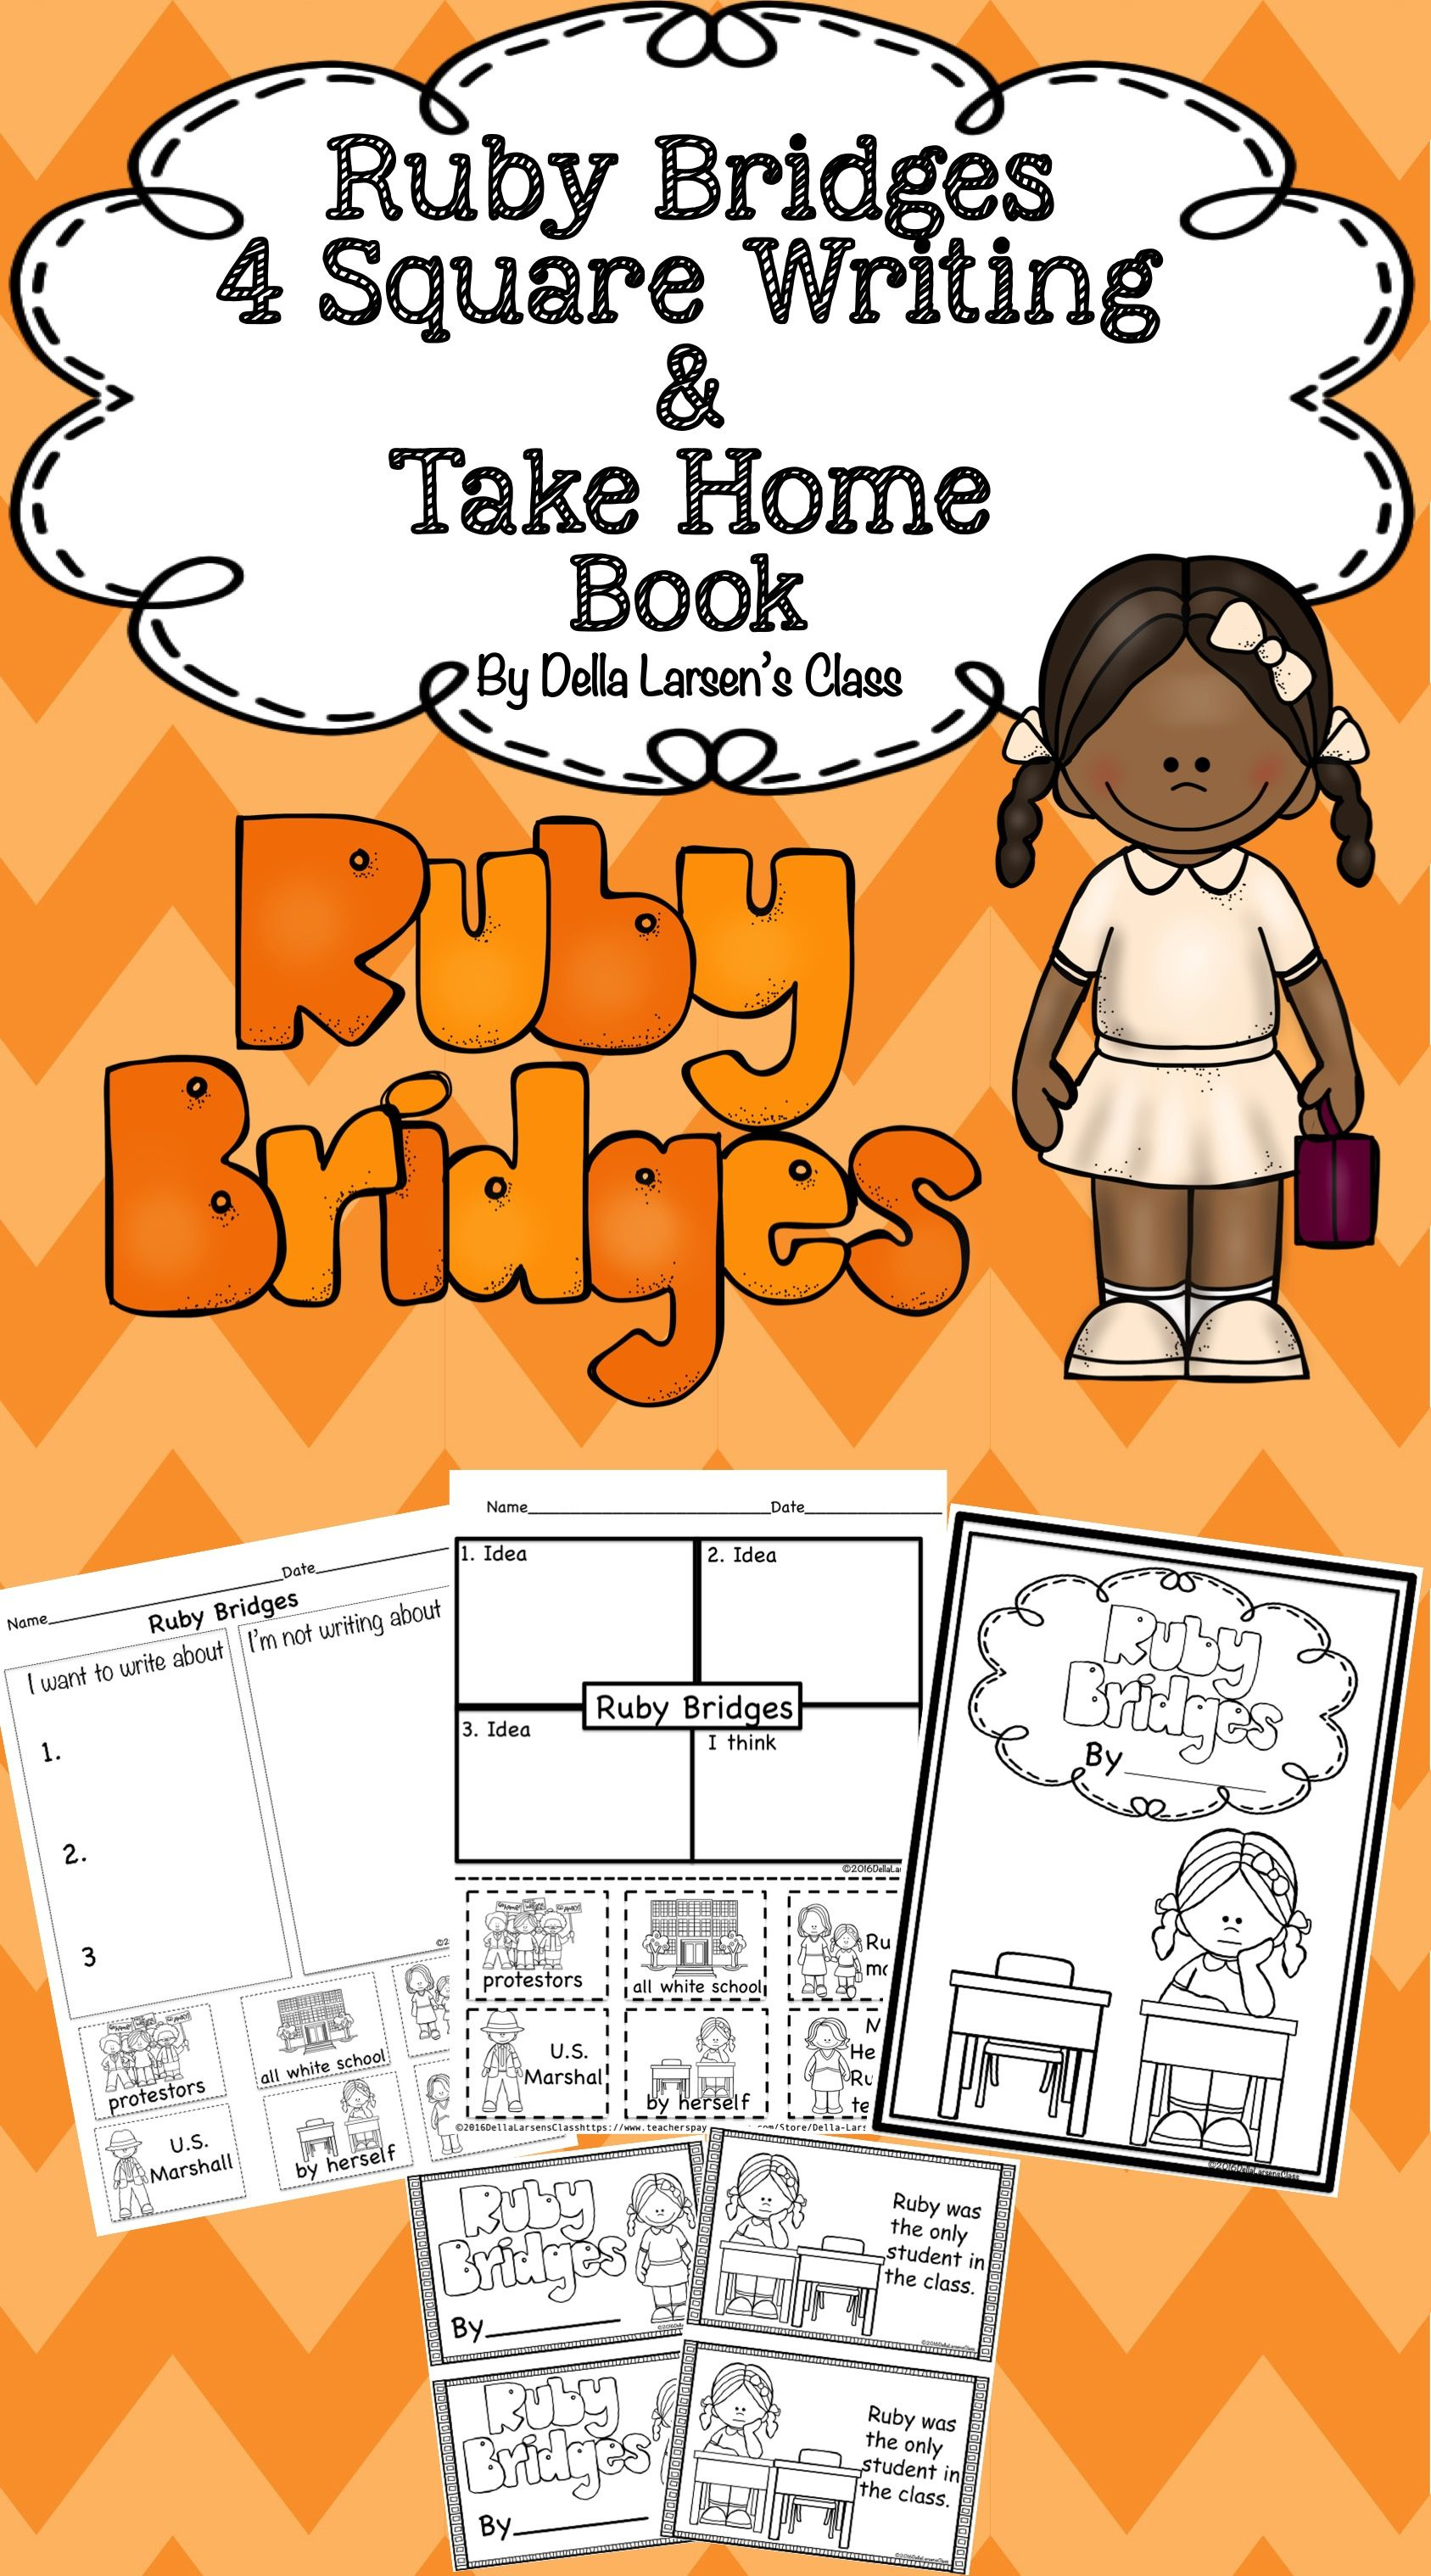 worksheet Ruby Bridges Worksheets For Second Grade ruby bridges 4 square writing take home book graphic organizers book